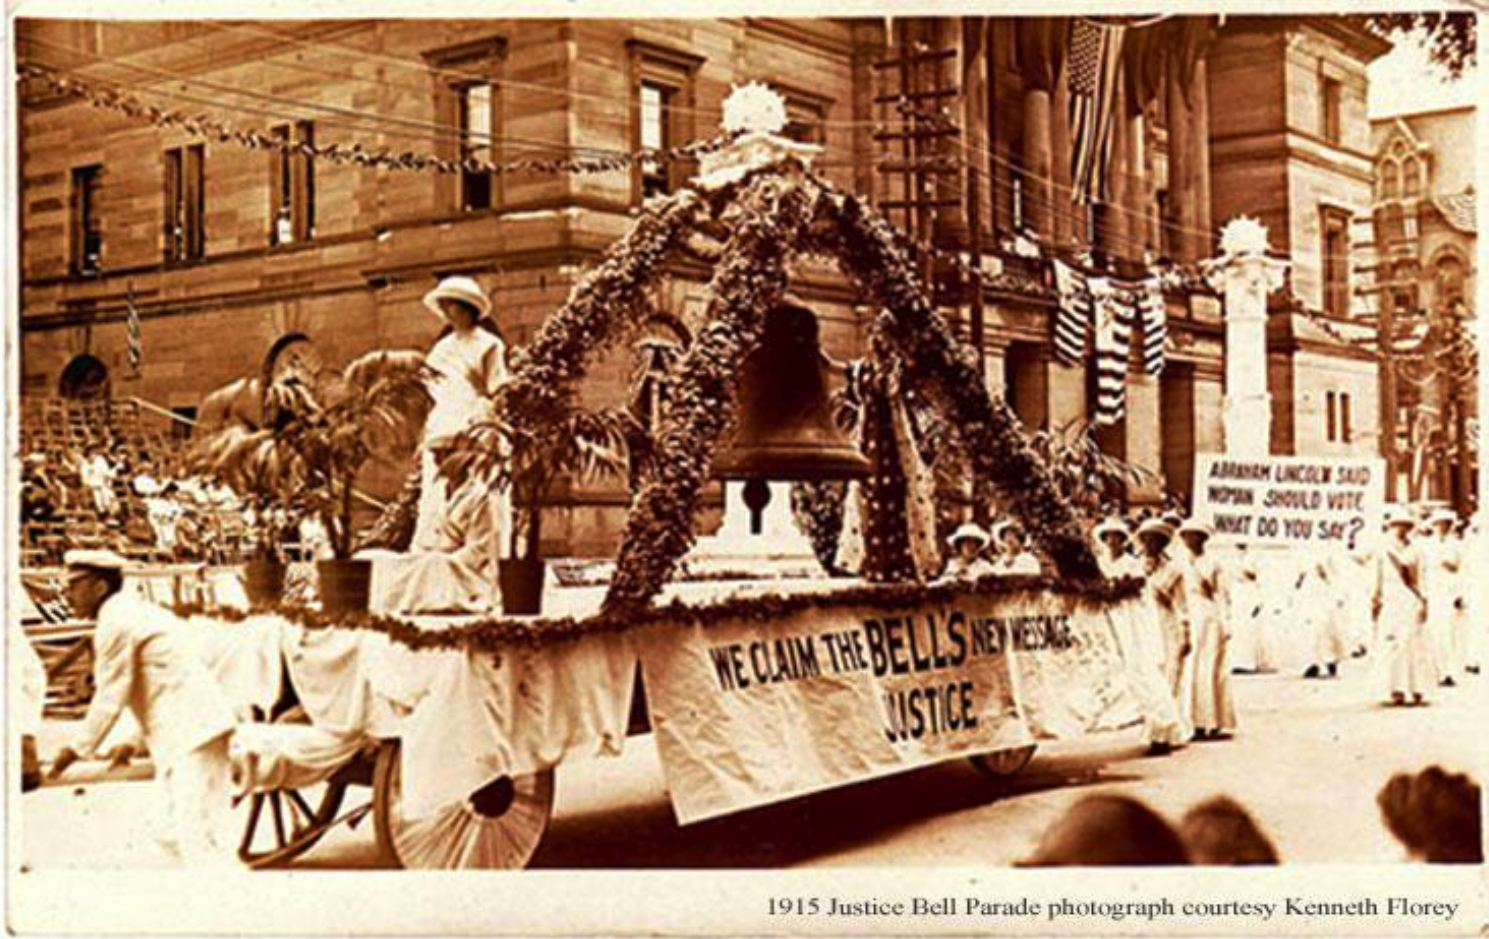 The Justice Bell on float in a 1915 parade